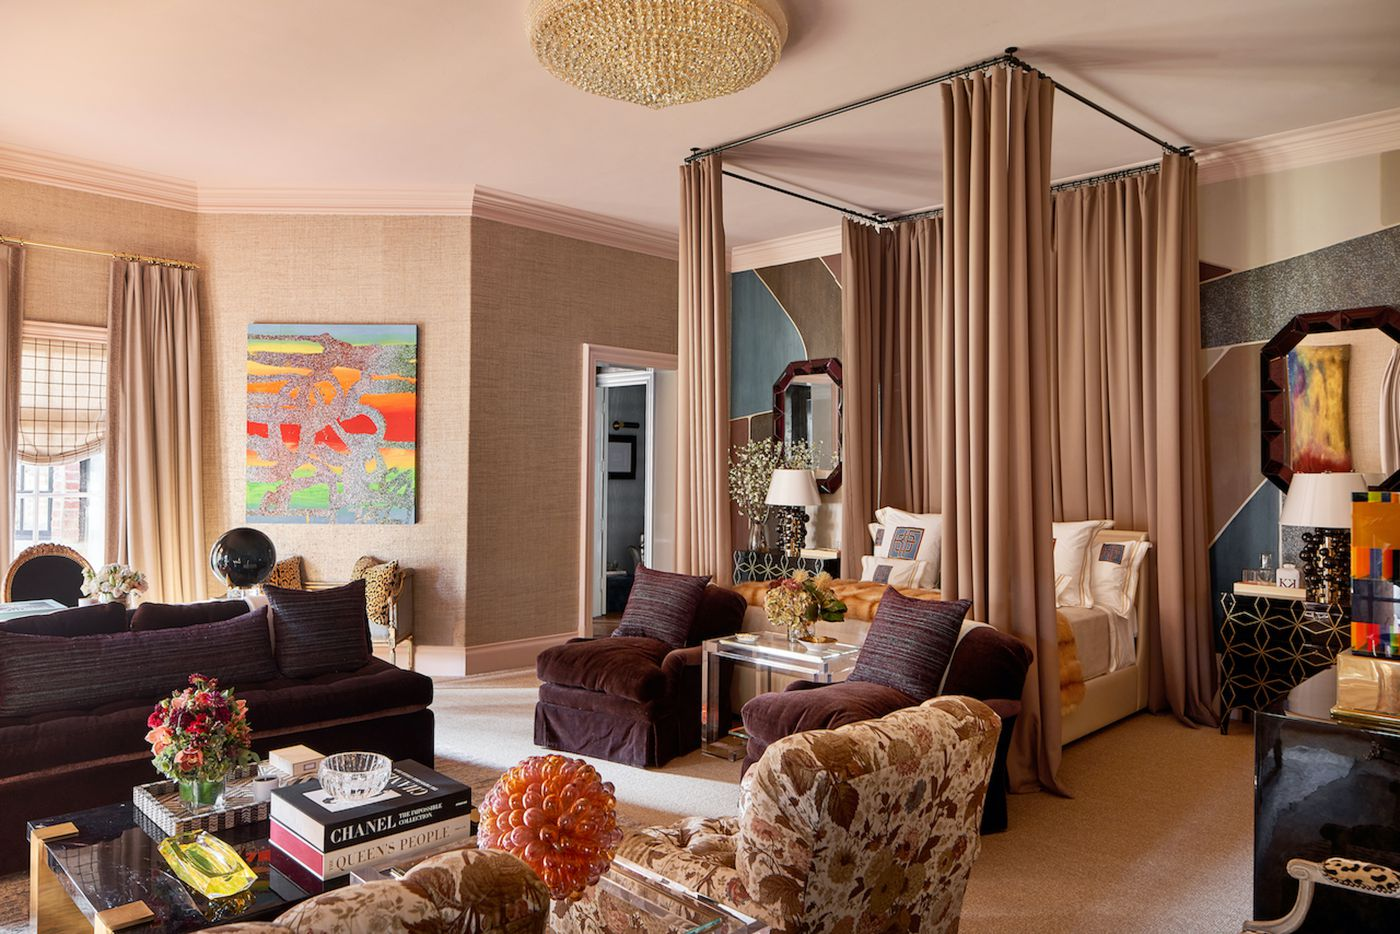 The primary bedroom at the Kips Bay Decorator Show House Dallas. This room was designed by Kirsten Kelli, LLC.